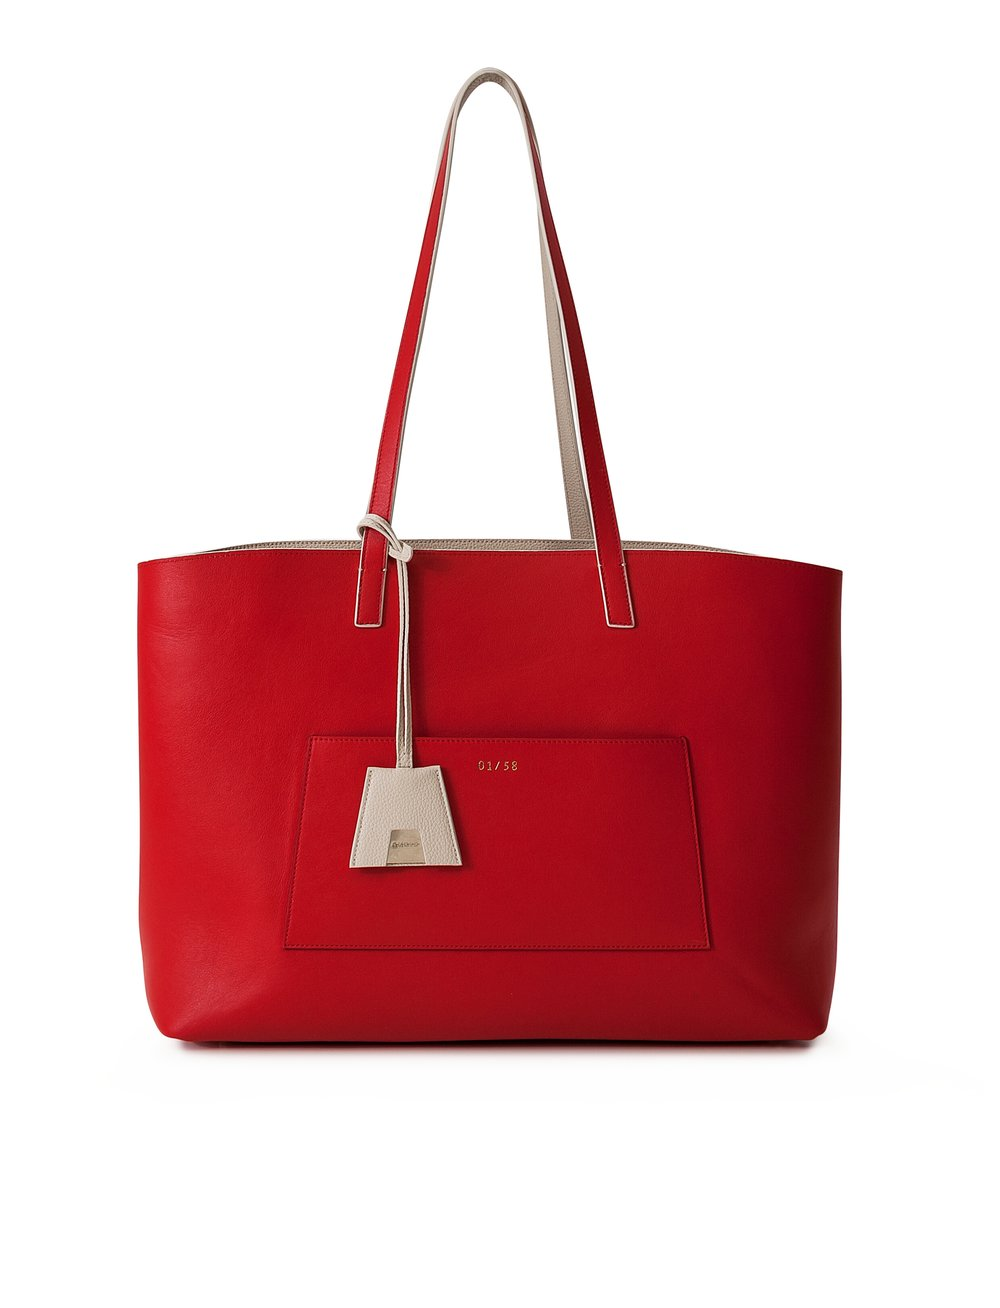 Akris Shoulder Bag £1280[2].jpg